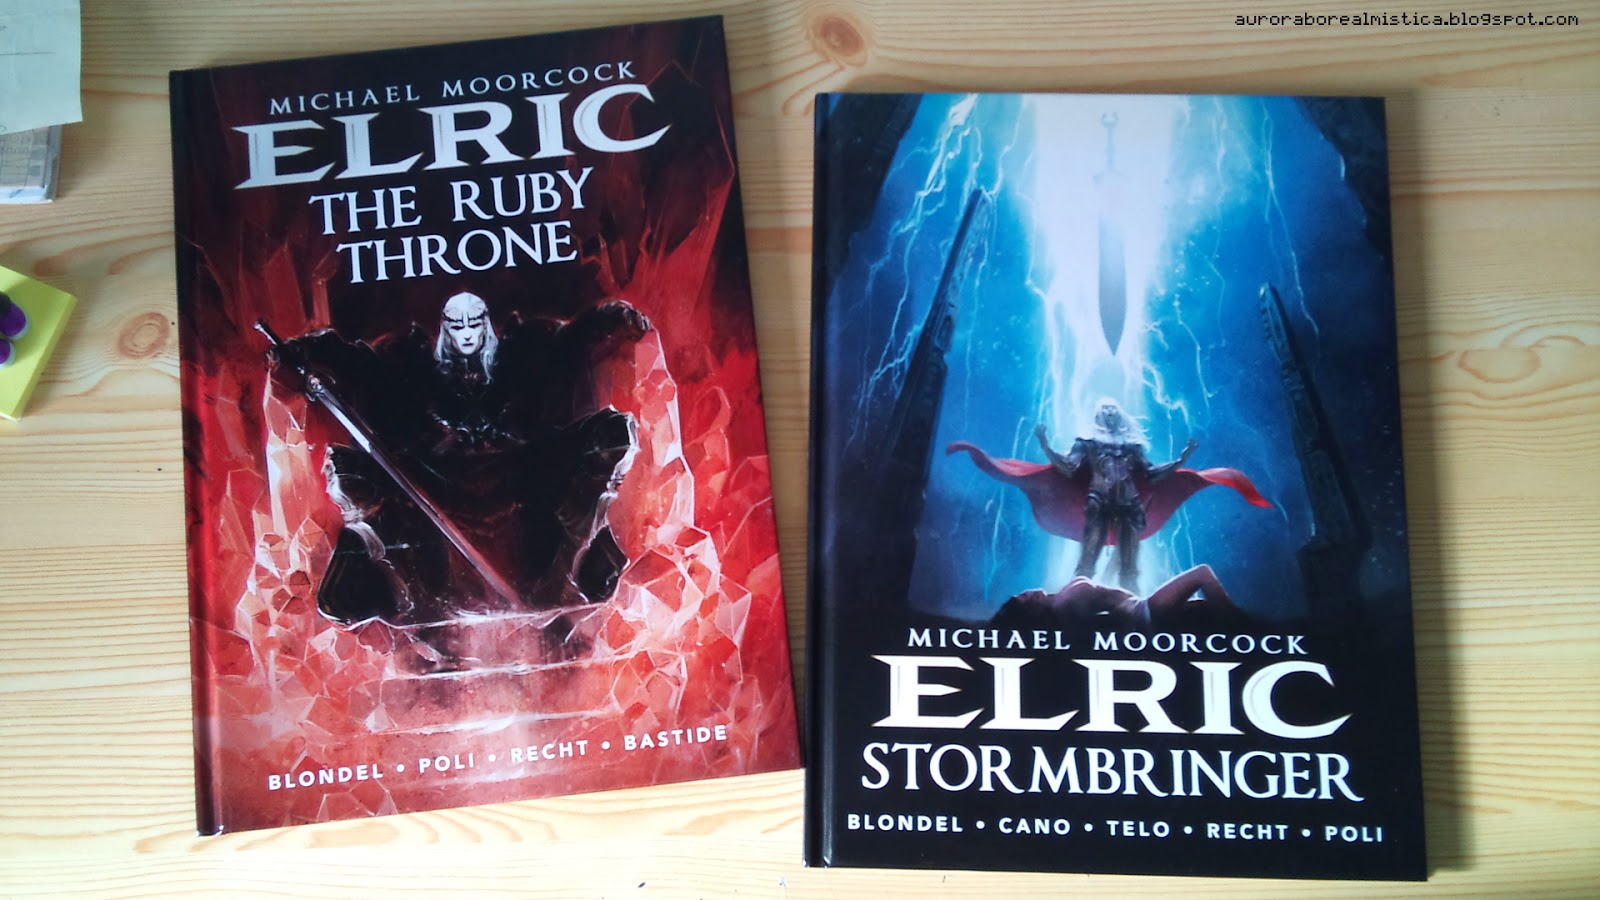 AURORA WALL: ELRIC -The Ruby Throne//Stormbringer- comic review